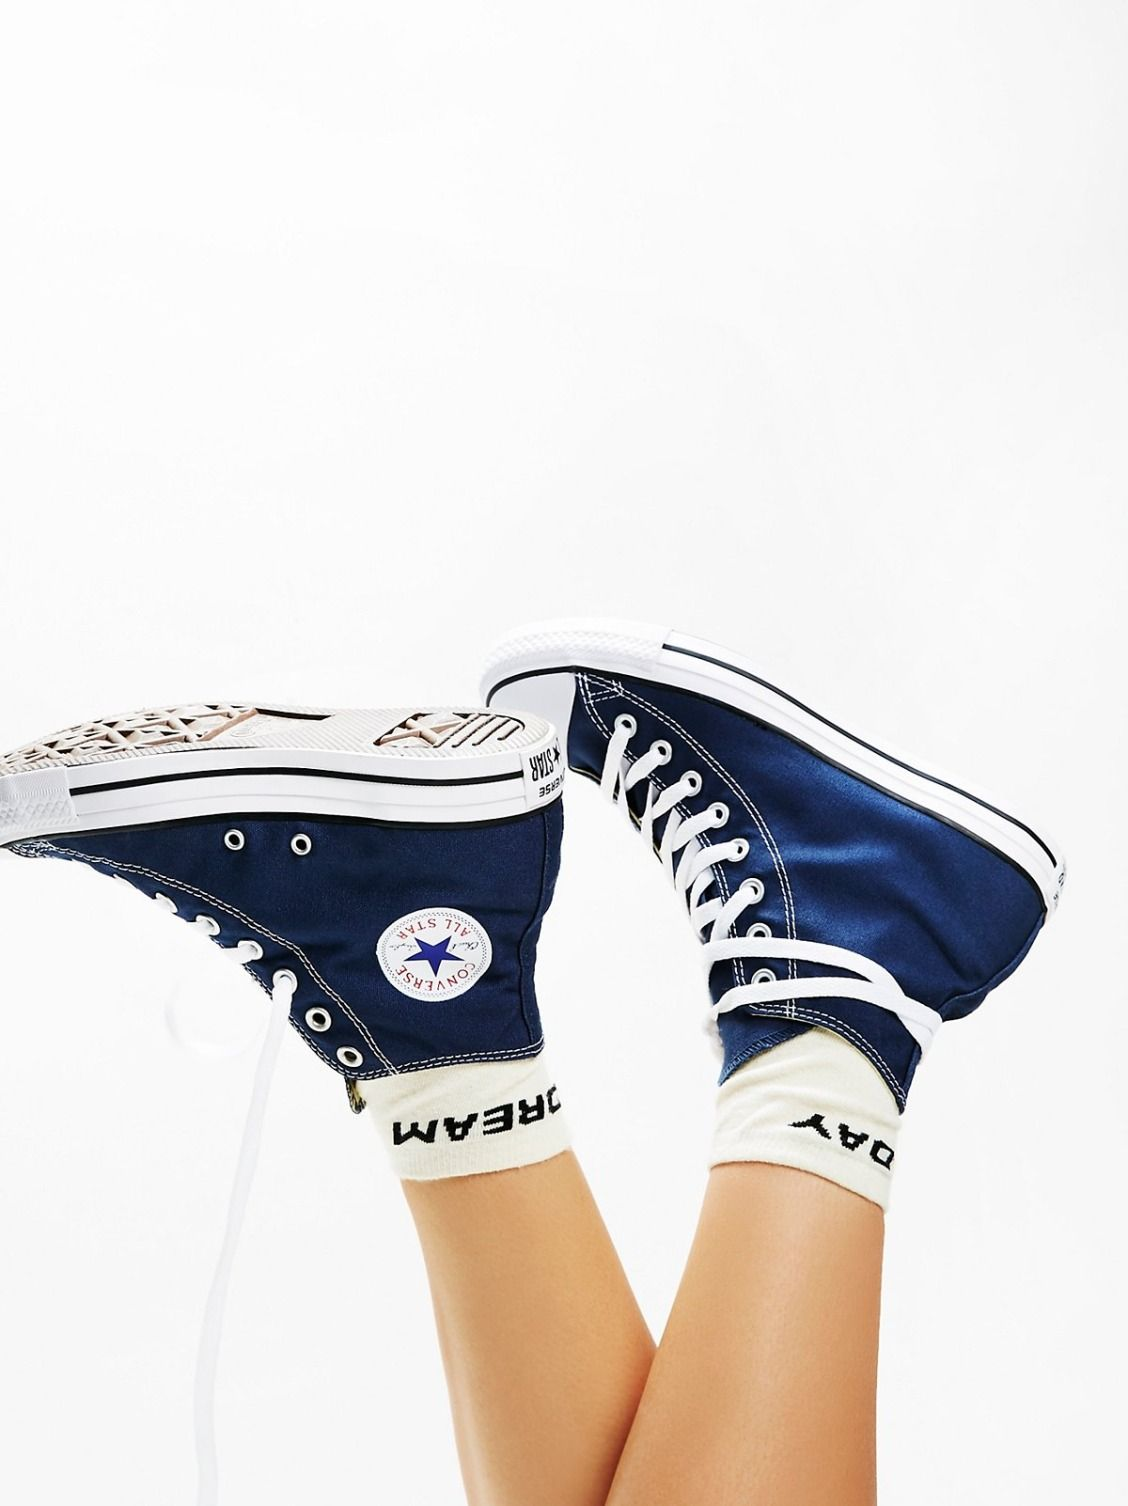 converse classic canvas high tops